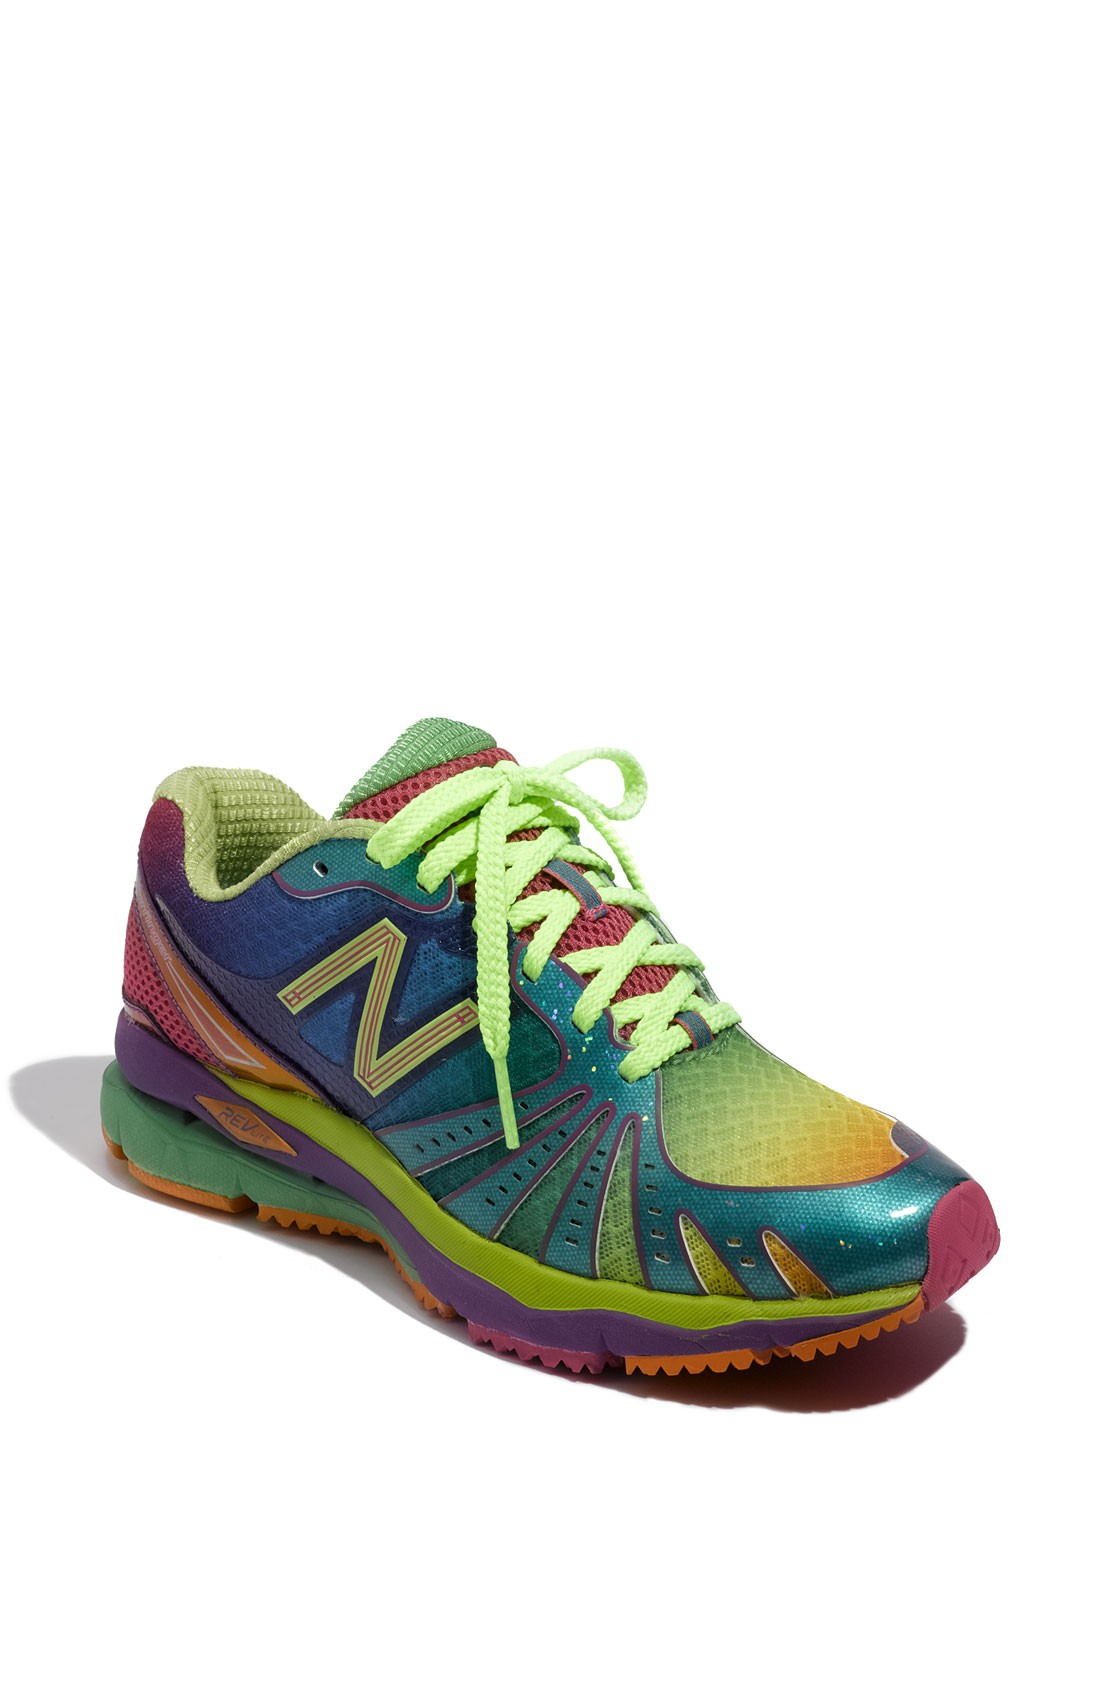 reputable site 73af1 2cdc0 Womens New Balance Multicolor 890 Rainbow Running shoes Blue Lime Green  Rose Purple